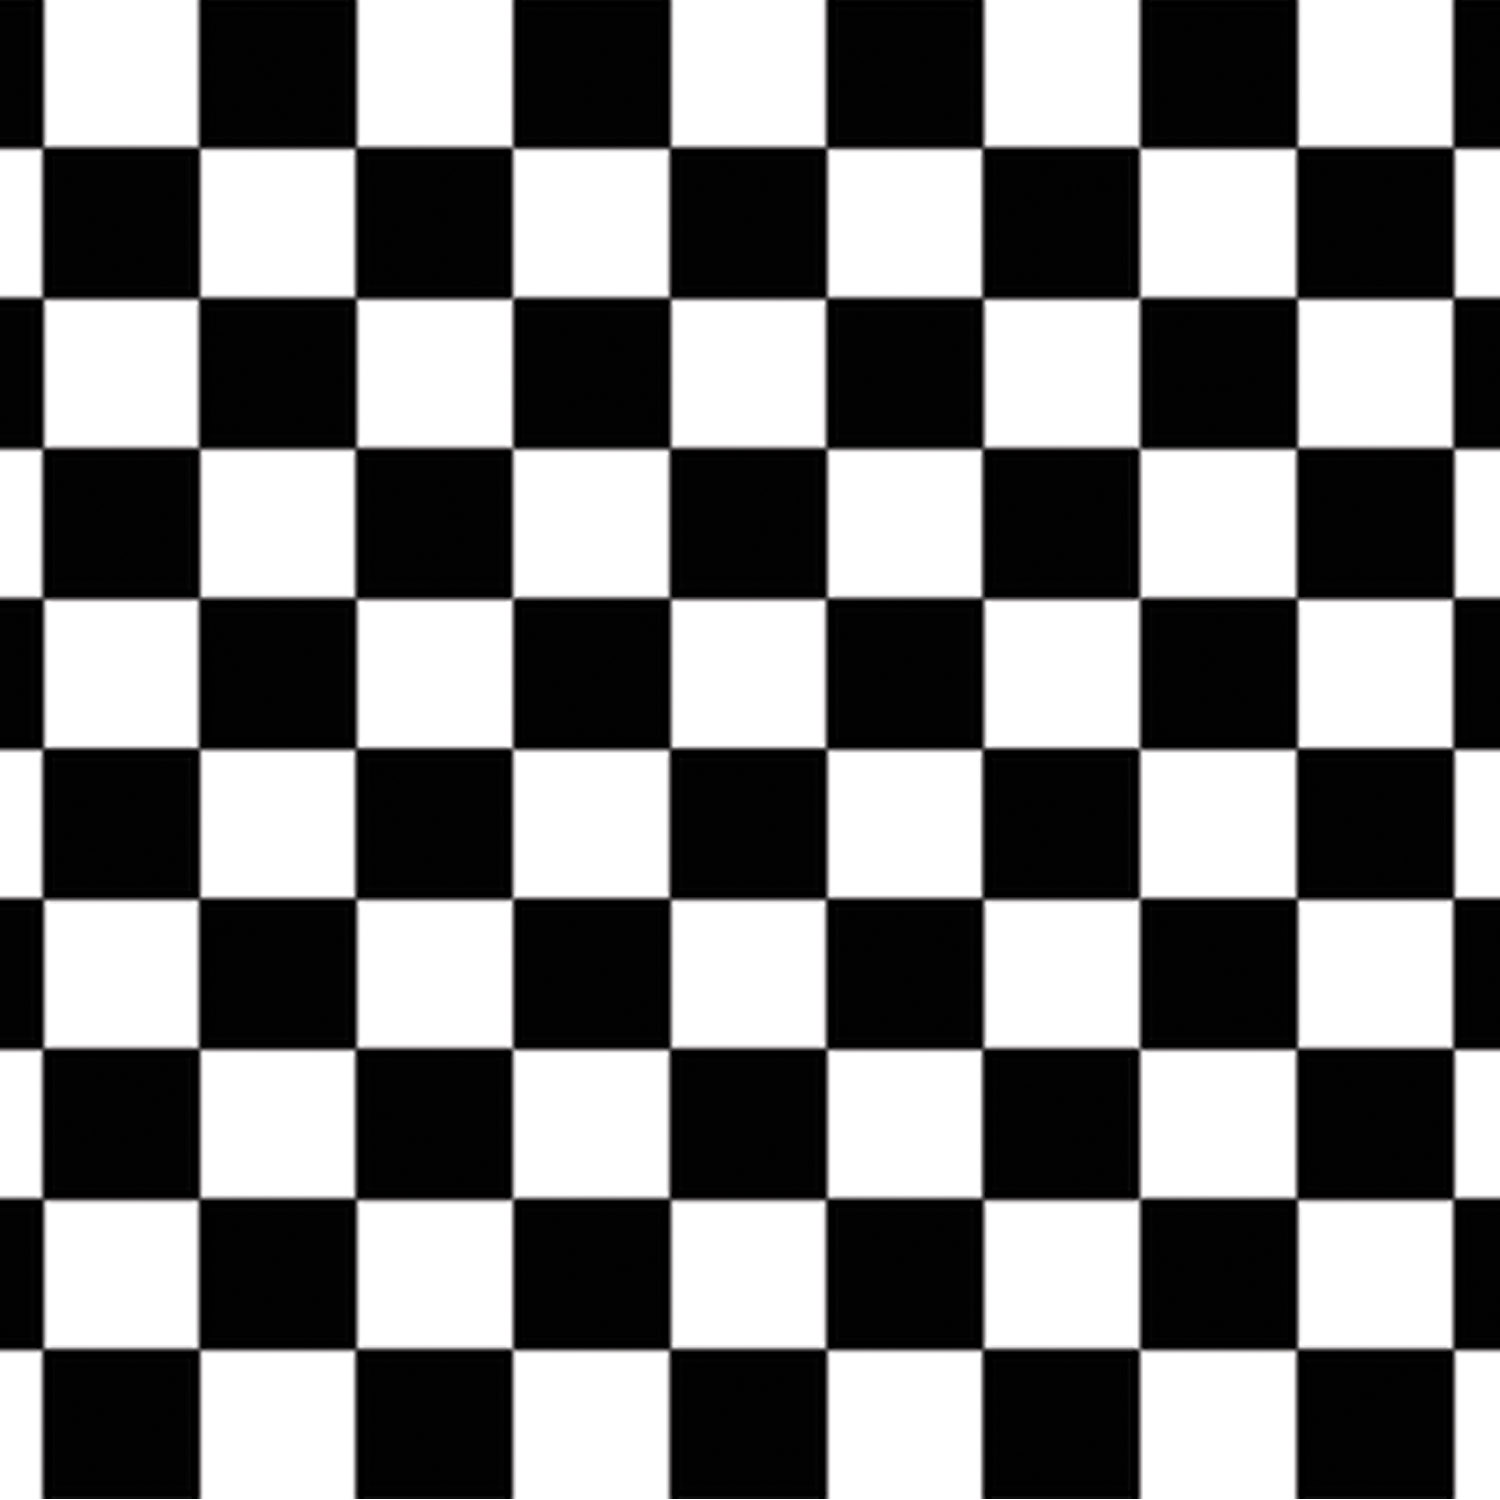 Checkered Backdrop (Pack of 6) Checkered Backdrop, black, white, checkered, decoration, 50s, racing, new years eve, wholesale, inexpensive, bulk